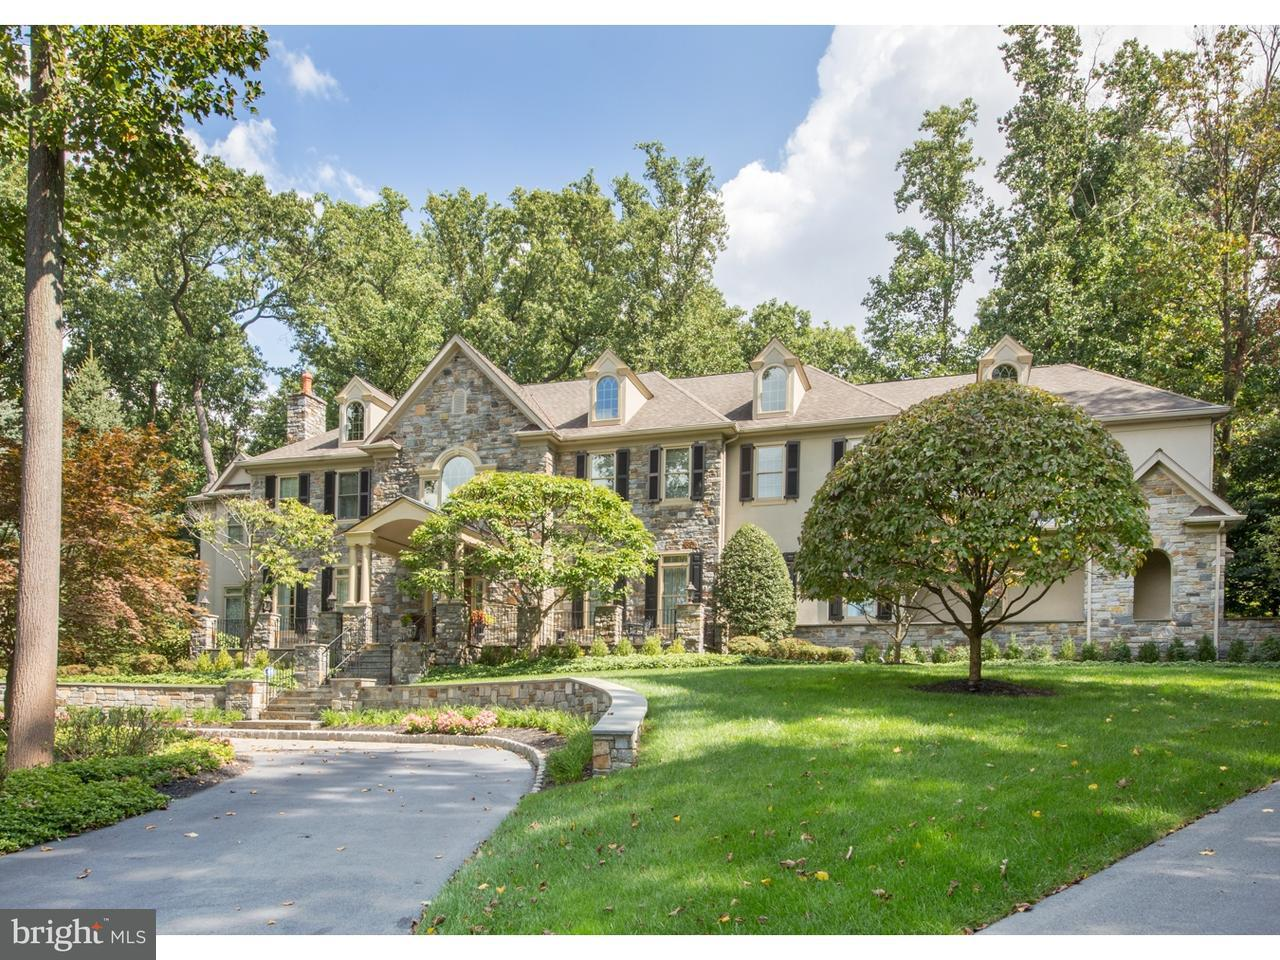 Single Family Home for Sale at 1000 RADCLIFF Lane Ambler, Pennsylvania 19002 United States